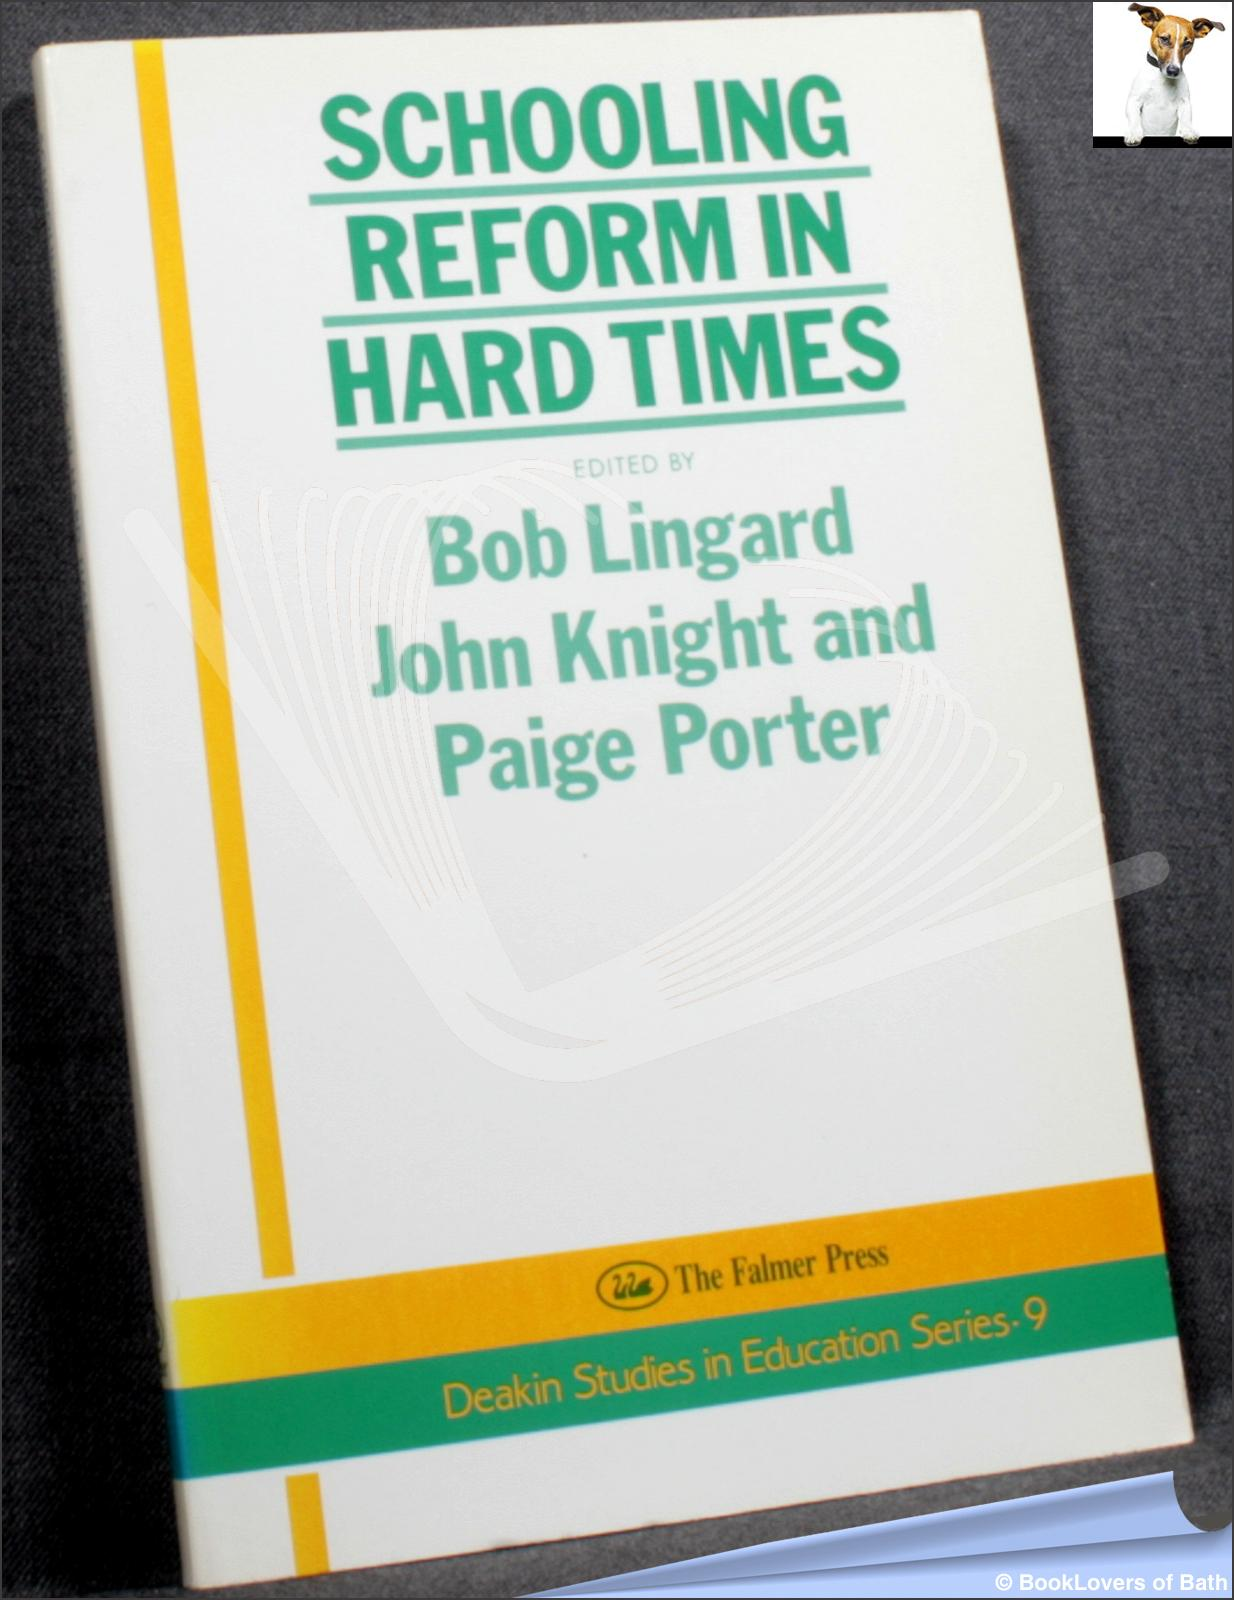 Schooling Reform in Hard Times - Edited by Bob Lingard, John Knight & Paige Porter